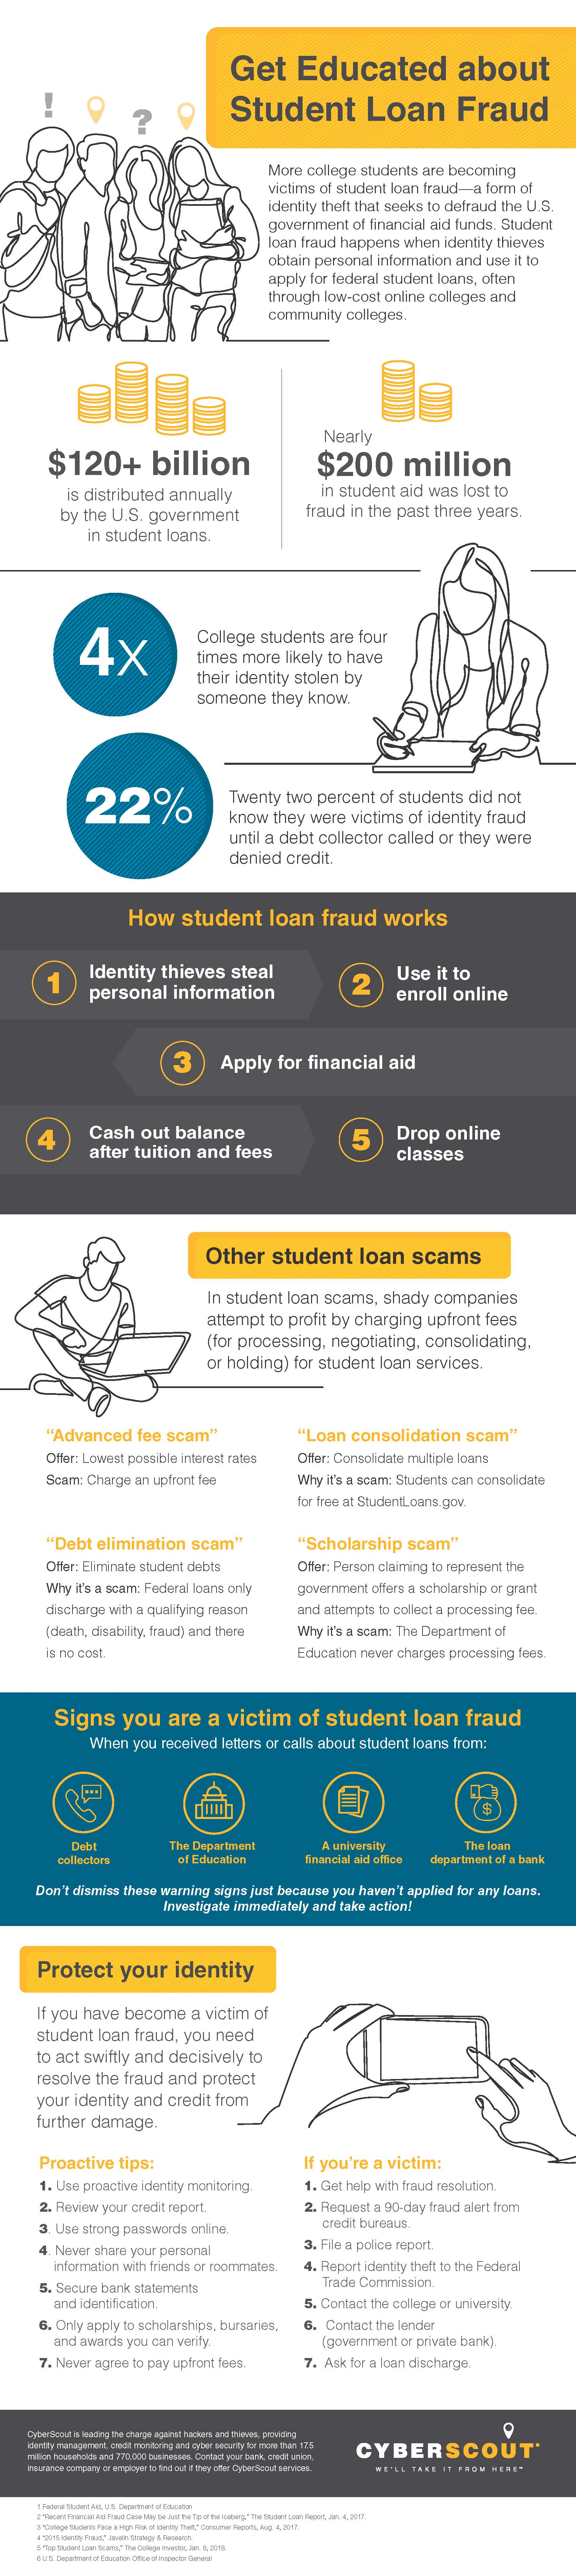 Do you know the signs of student loan fraud?